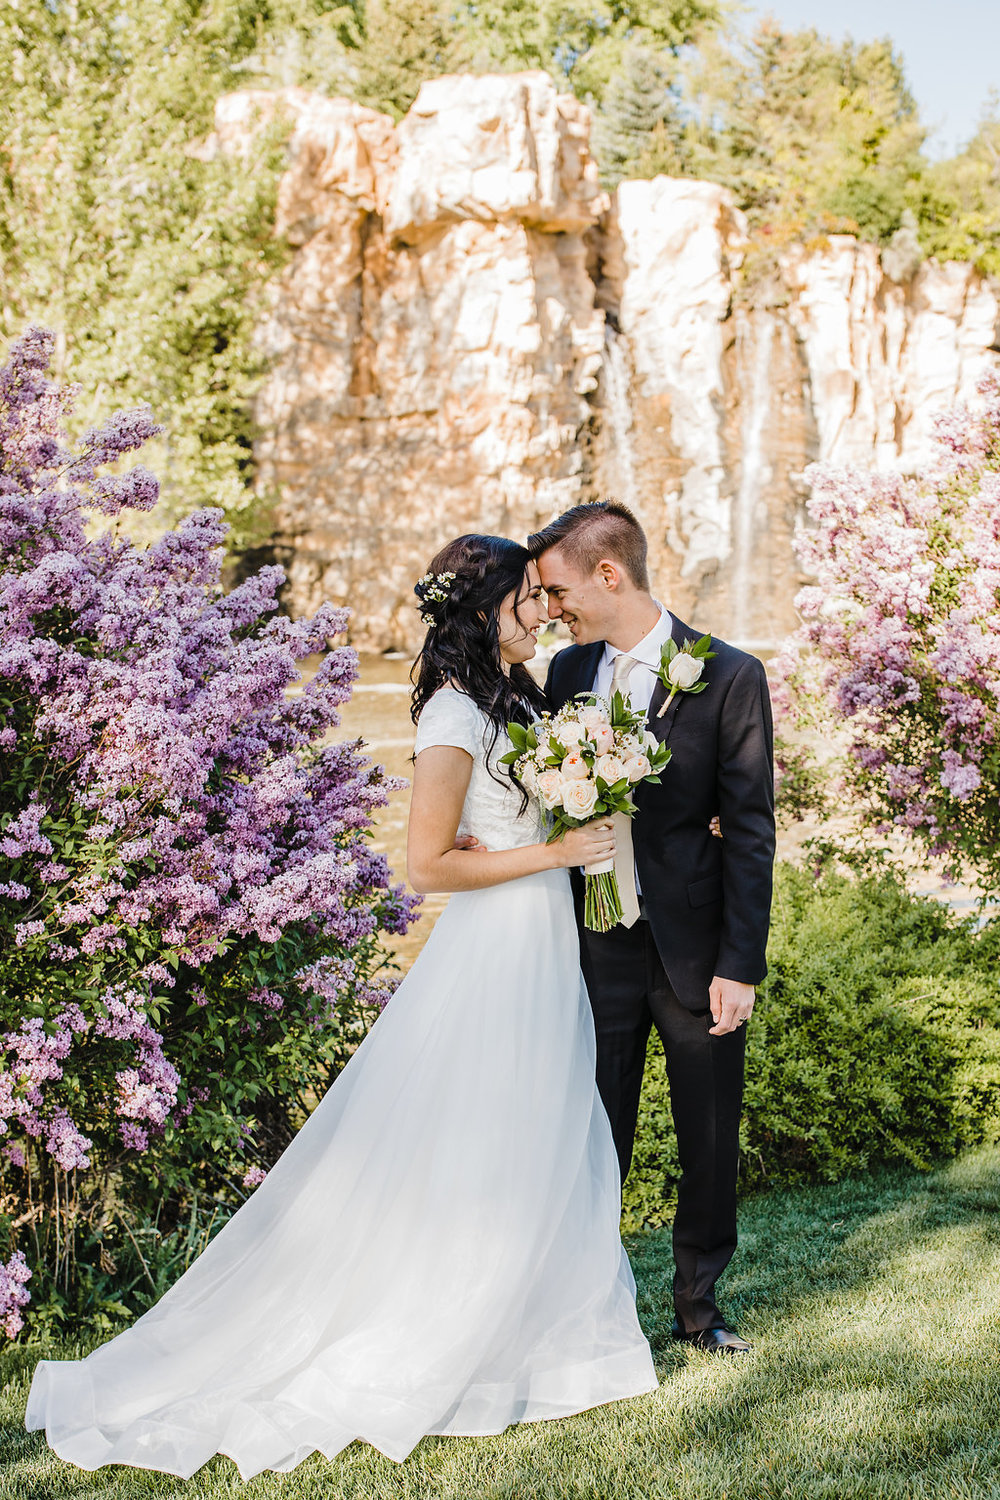 floral romantic professional wedding day photos best wedding photographer in salt lake city utah